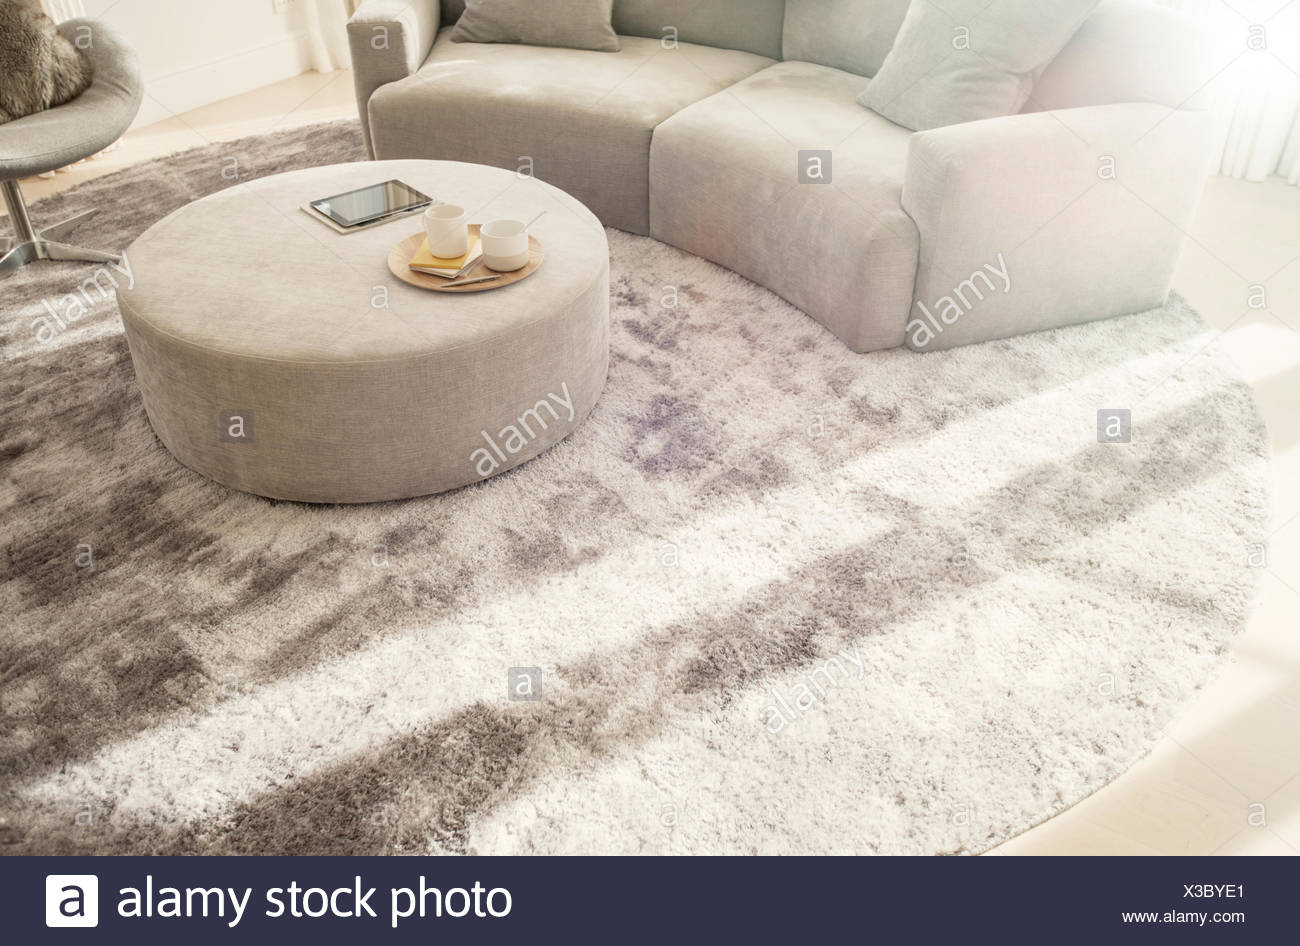 Stupendous Round Rug Under Curved Sofa And Ottoman In Living Room Stock Forskolin Free Trial Chair Design Images Forskolin Free Trialorg